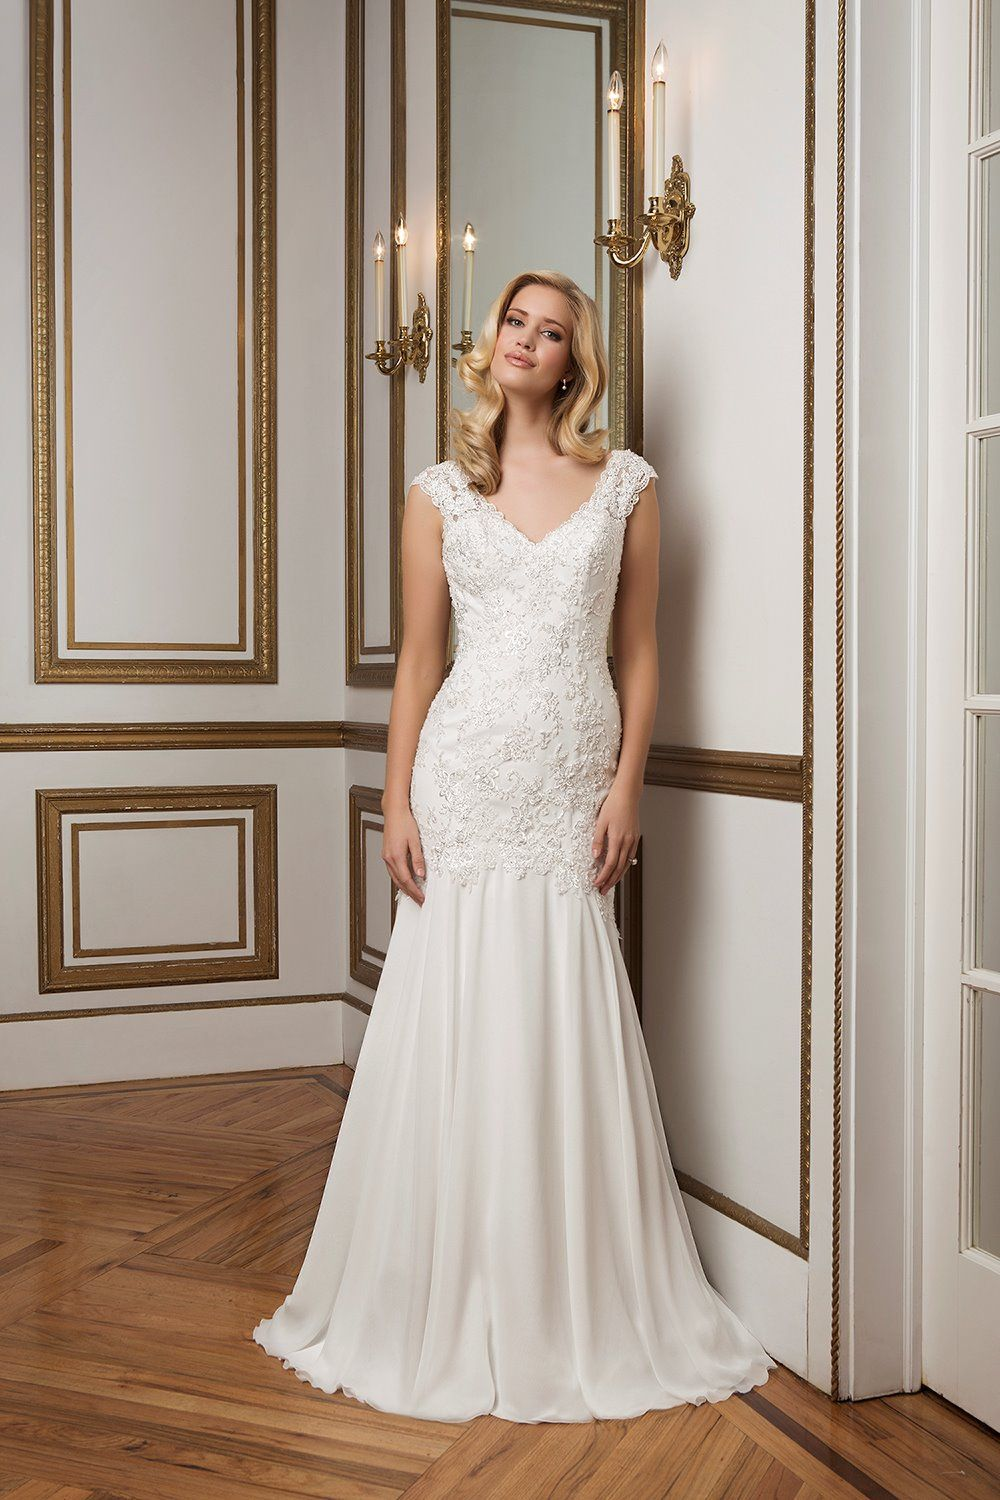 Wedding Dress Shop Hemel Hempstead | Wedding Dress Shop Aylesbury ...